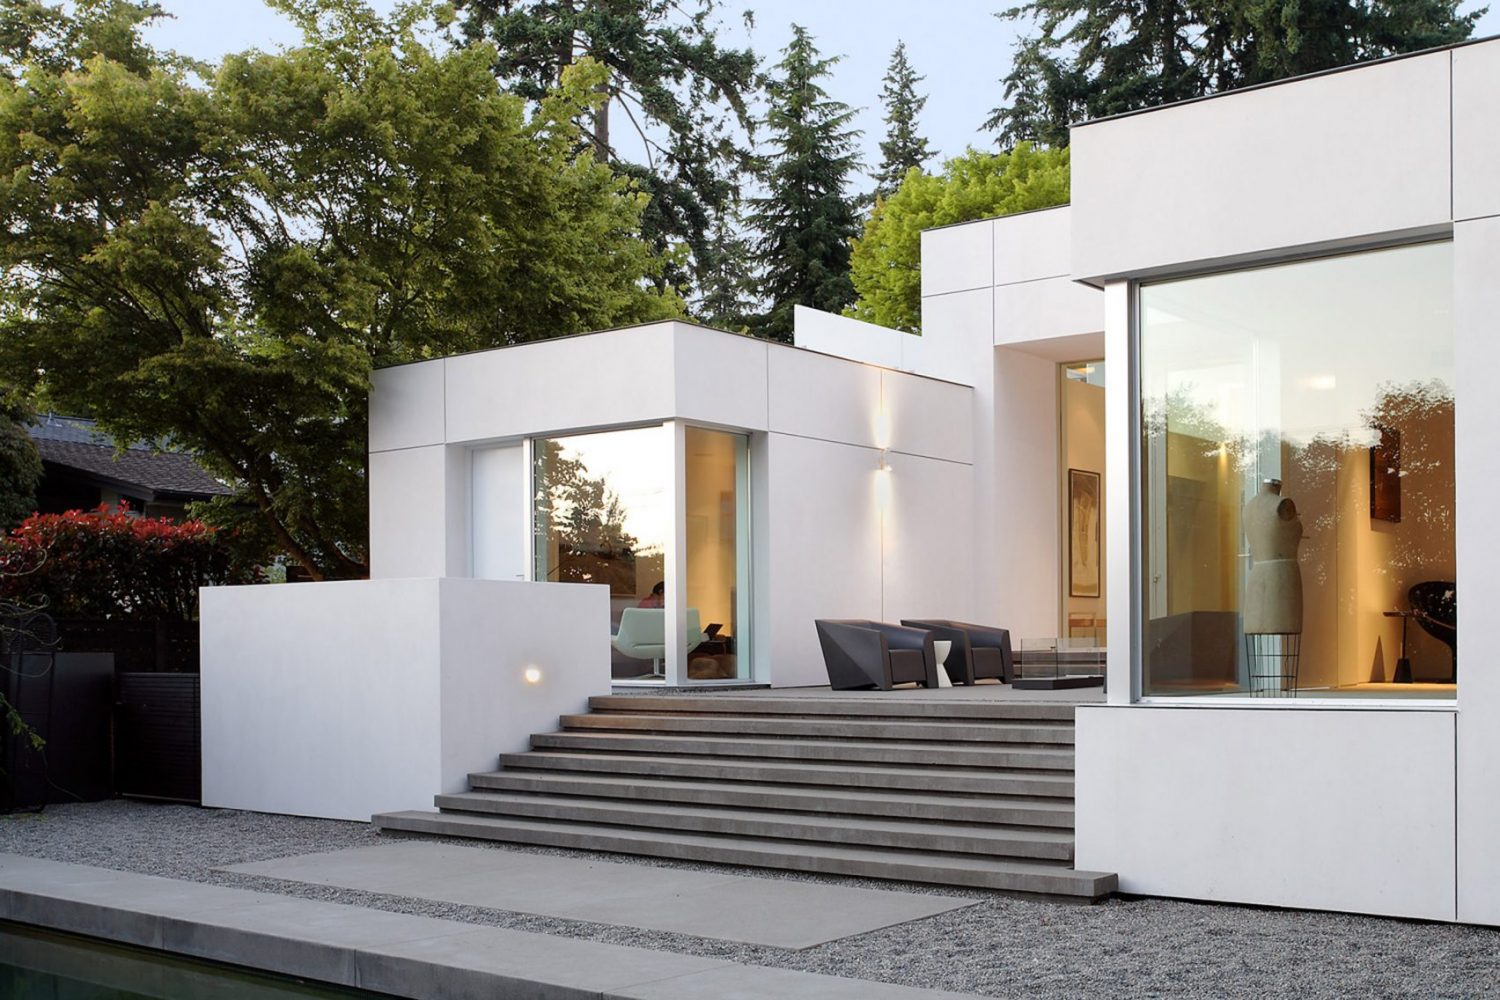 Modern Oasis by SkB Architects Features Gallery-Like Aesthetic Modern Oasis by SkB Architects Modern Oasis by SkB Architects Features Gallery-Like Aesthetic Modern Oasis by SkB Architects Features Gallery Like Aesthetic 6